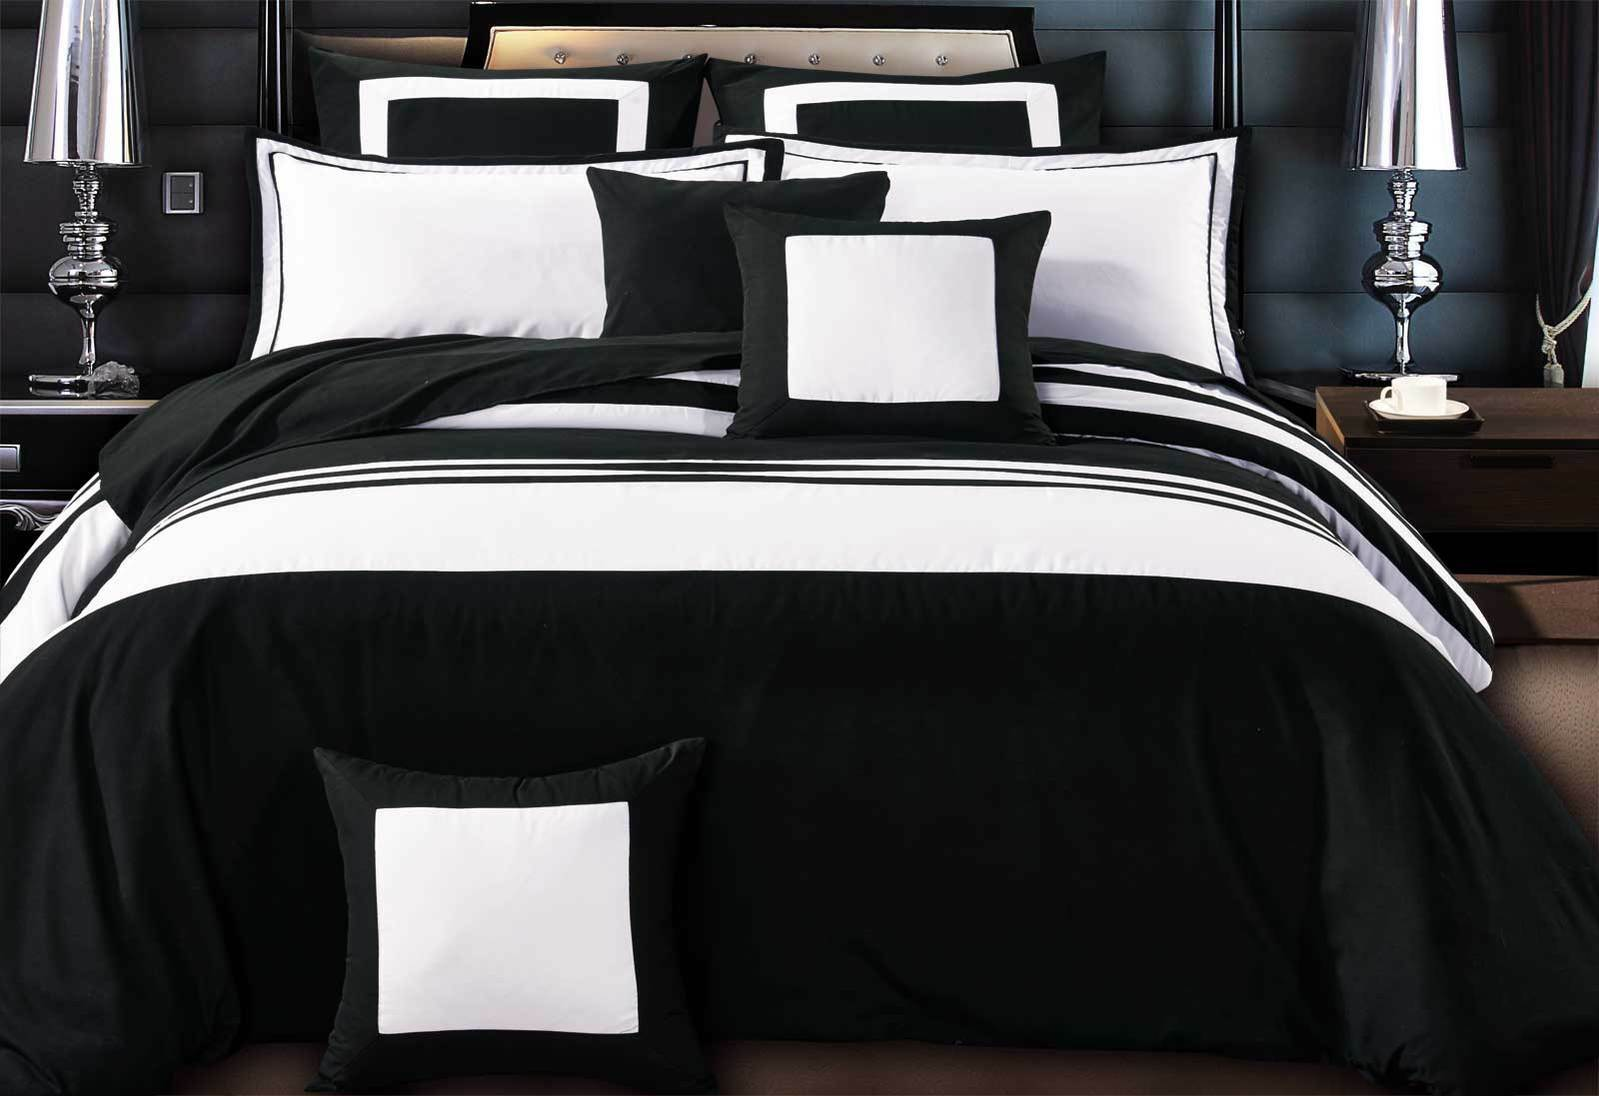 Luxton Rossier Striped Black Amp White Duvet Quilt Cover